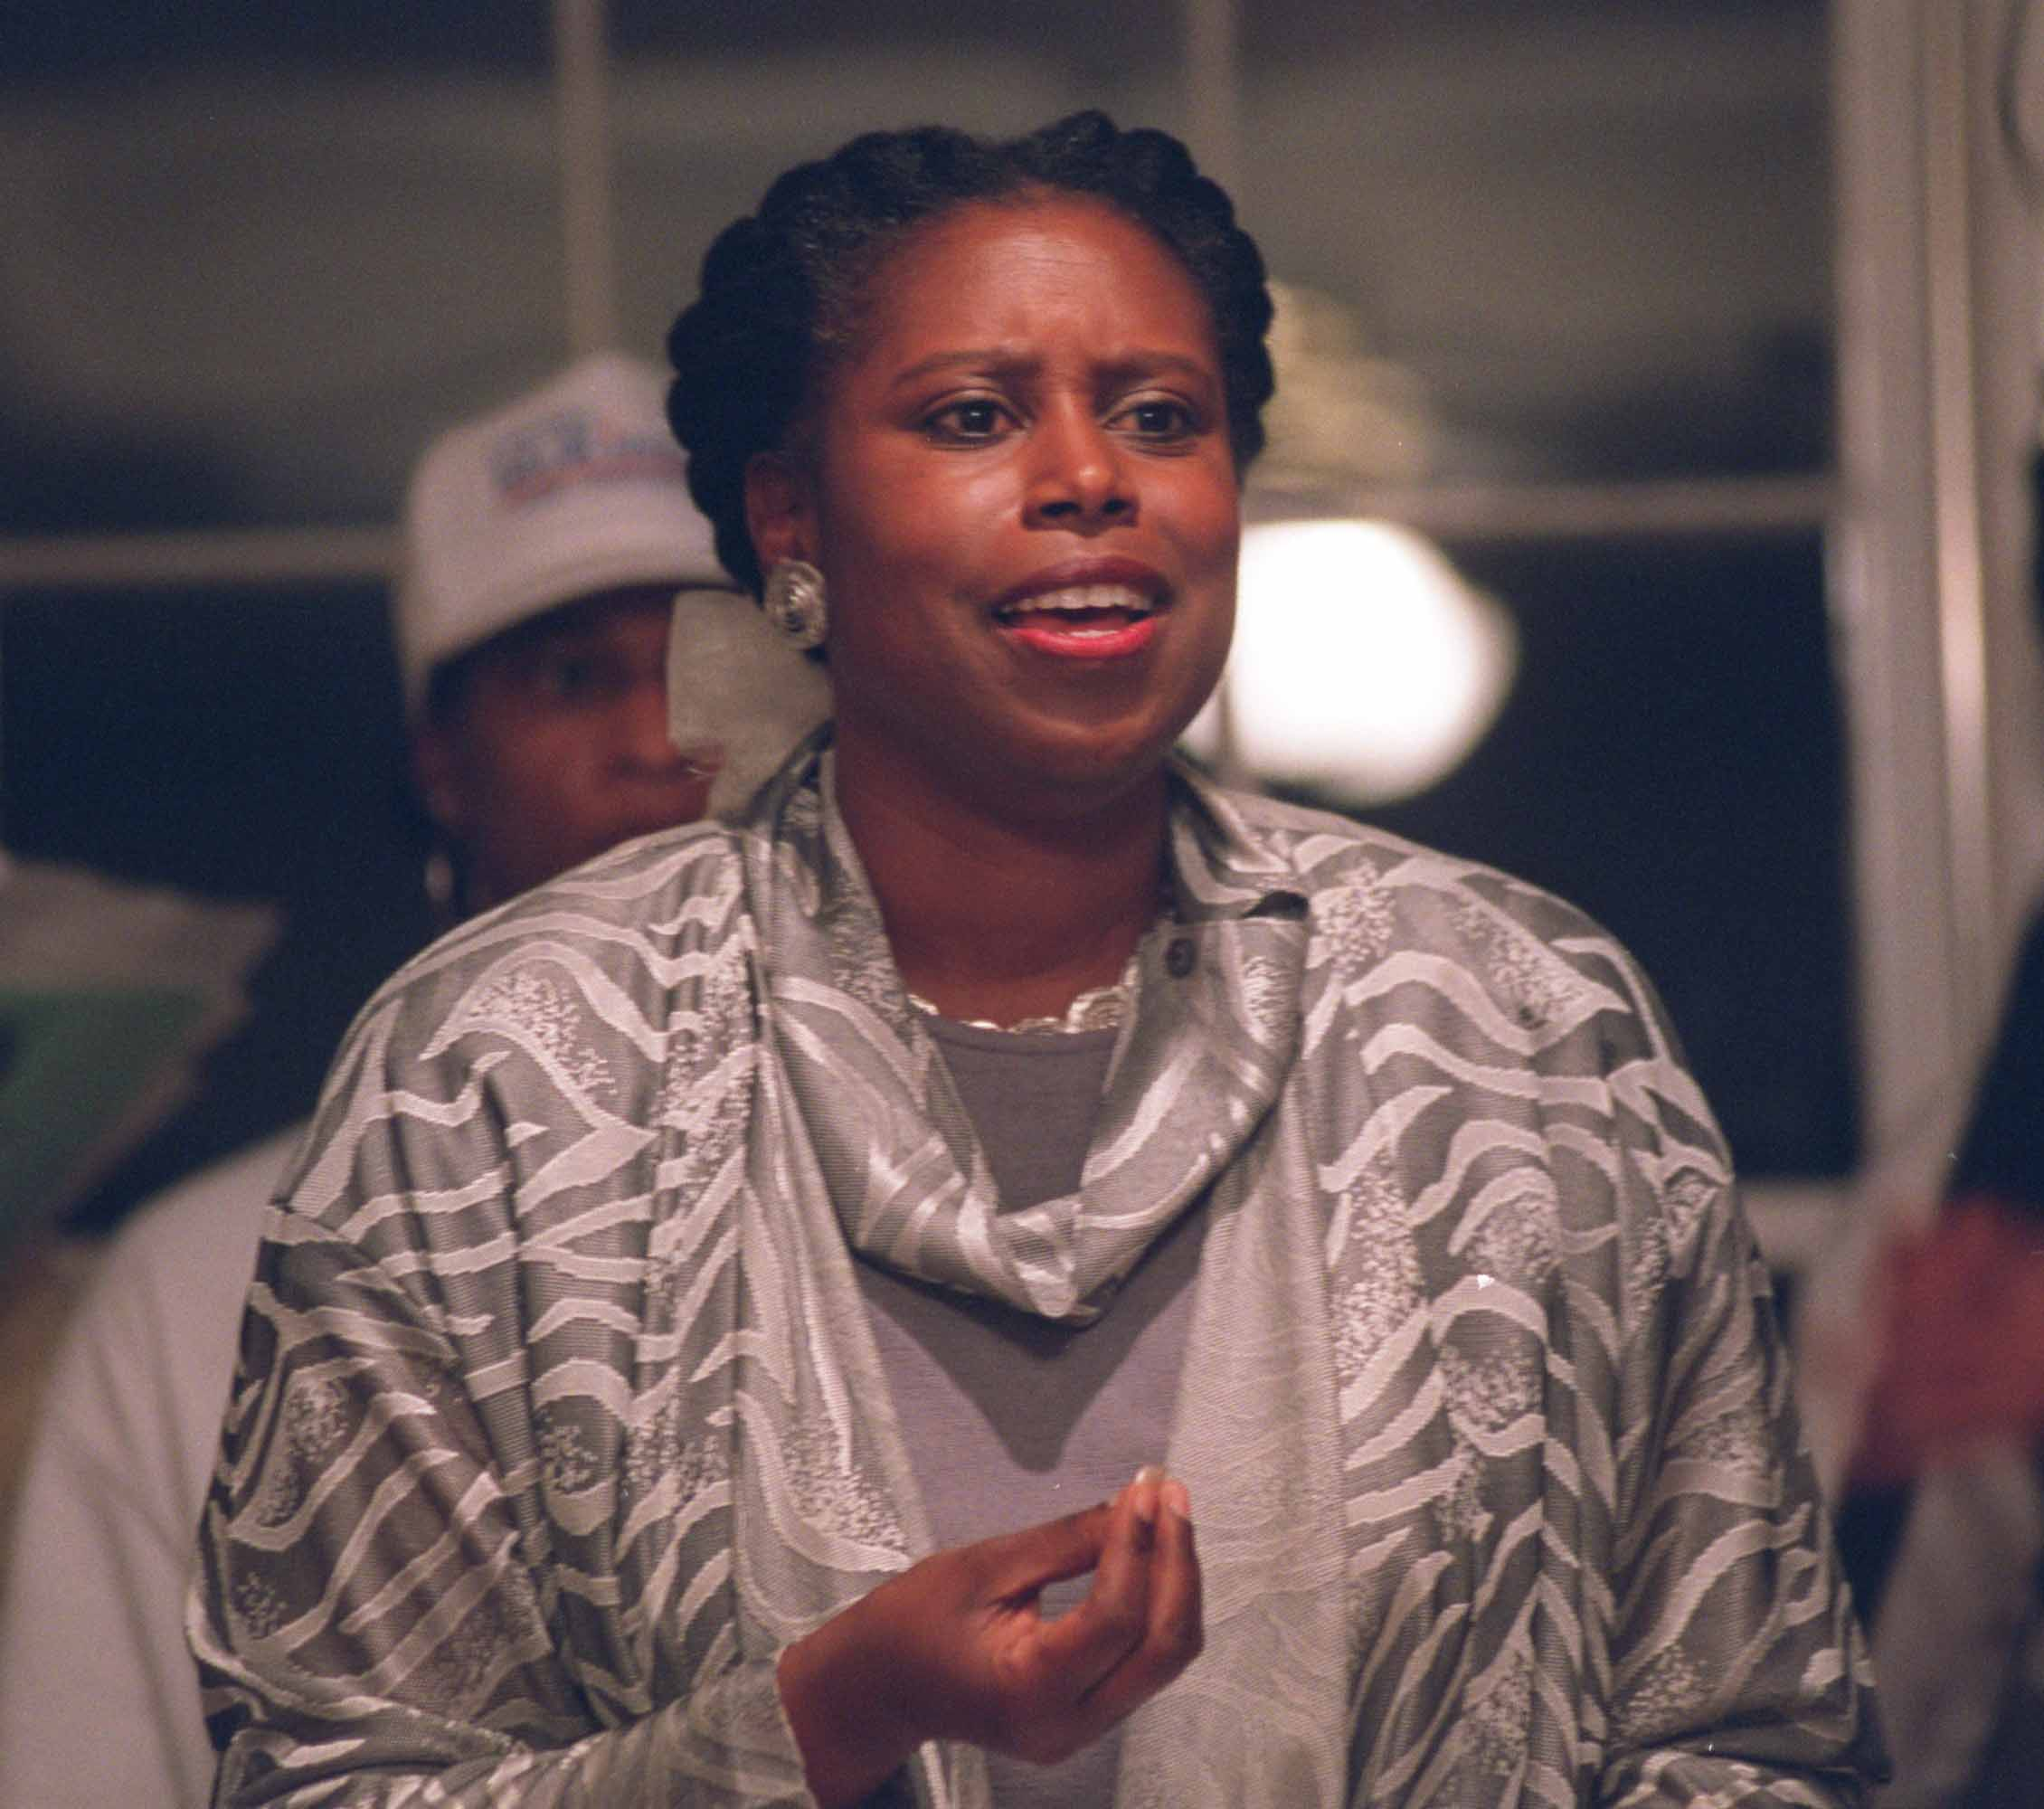 020815 Lithonia, GA.: Cynthia McKinney(cq) attends a campaign stop and candidate forum at the Lion's Head Neighborhood Association clubhouse in the Lion's Head subdivision in Lithonia on Thursday evening 2/15/02. (ANDY KJELLGREN/ AJC STAFF )